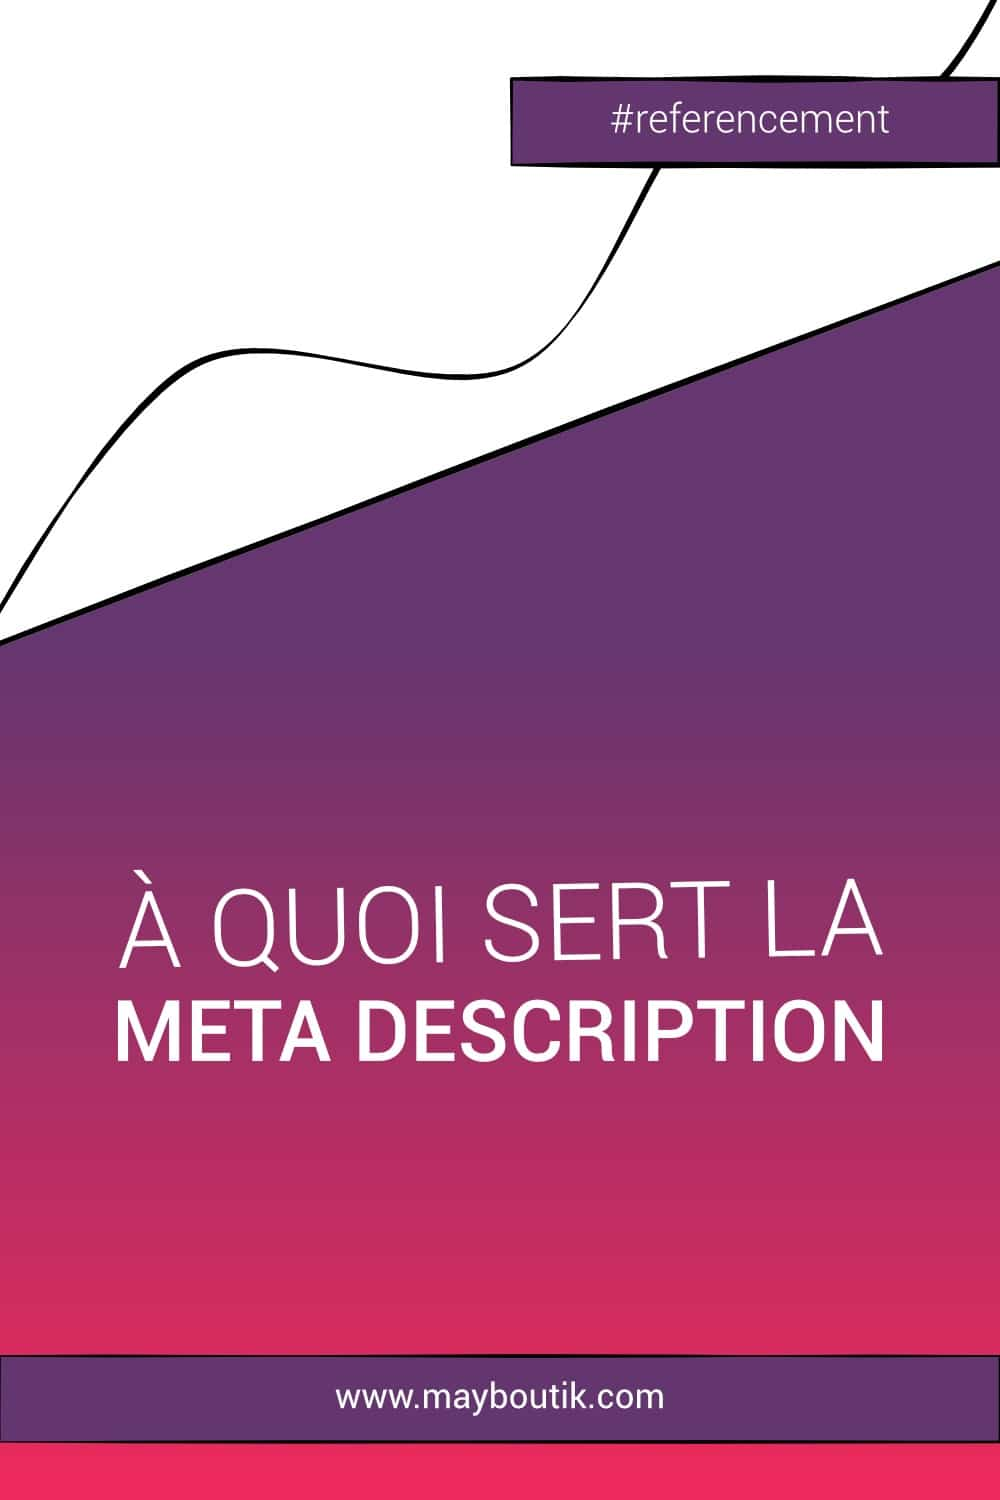 Meta description Définition